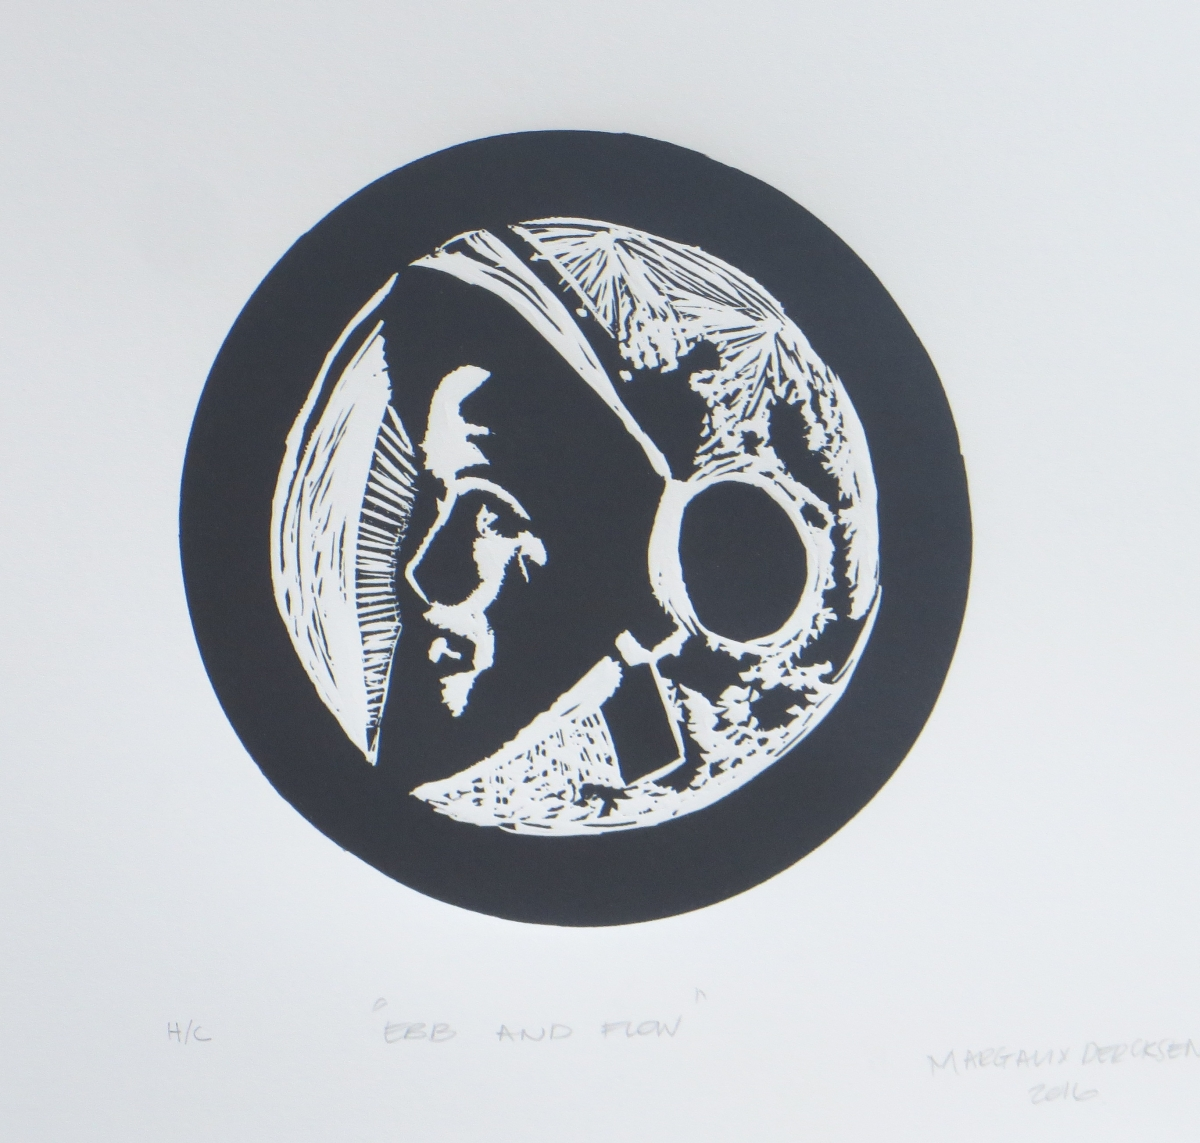 Ebb and Flow   Margaux Dercksen  Linocut  335 x 335 m  Edition of 20  R 1340.00 excl. vat